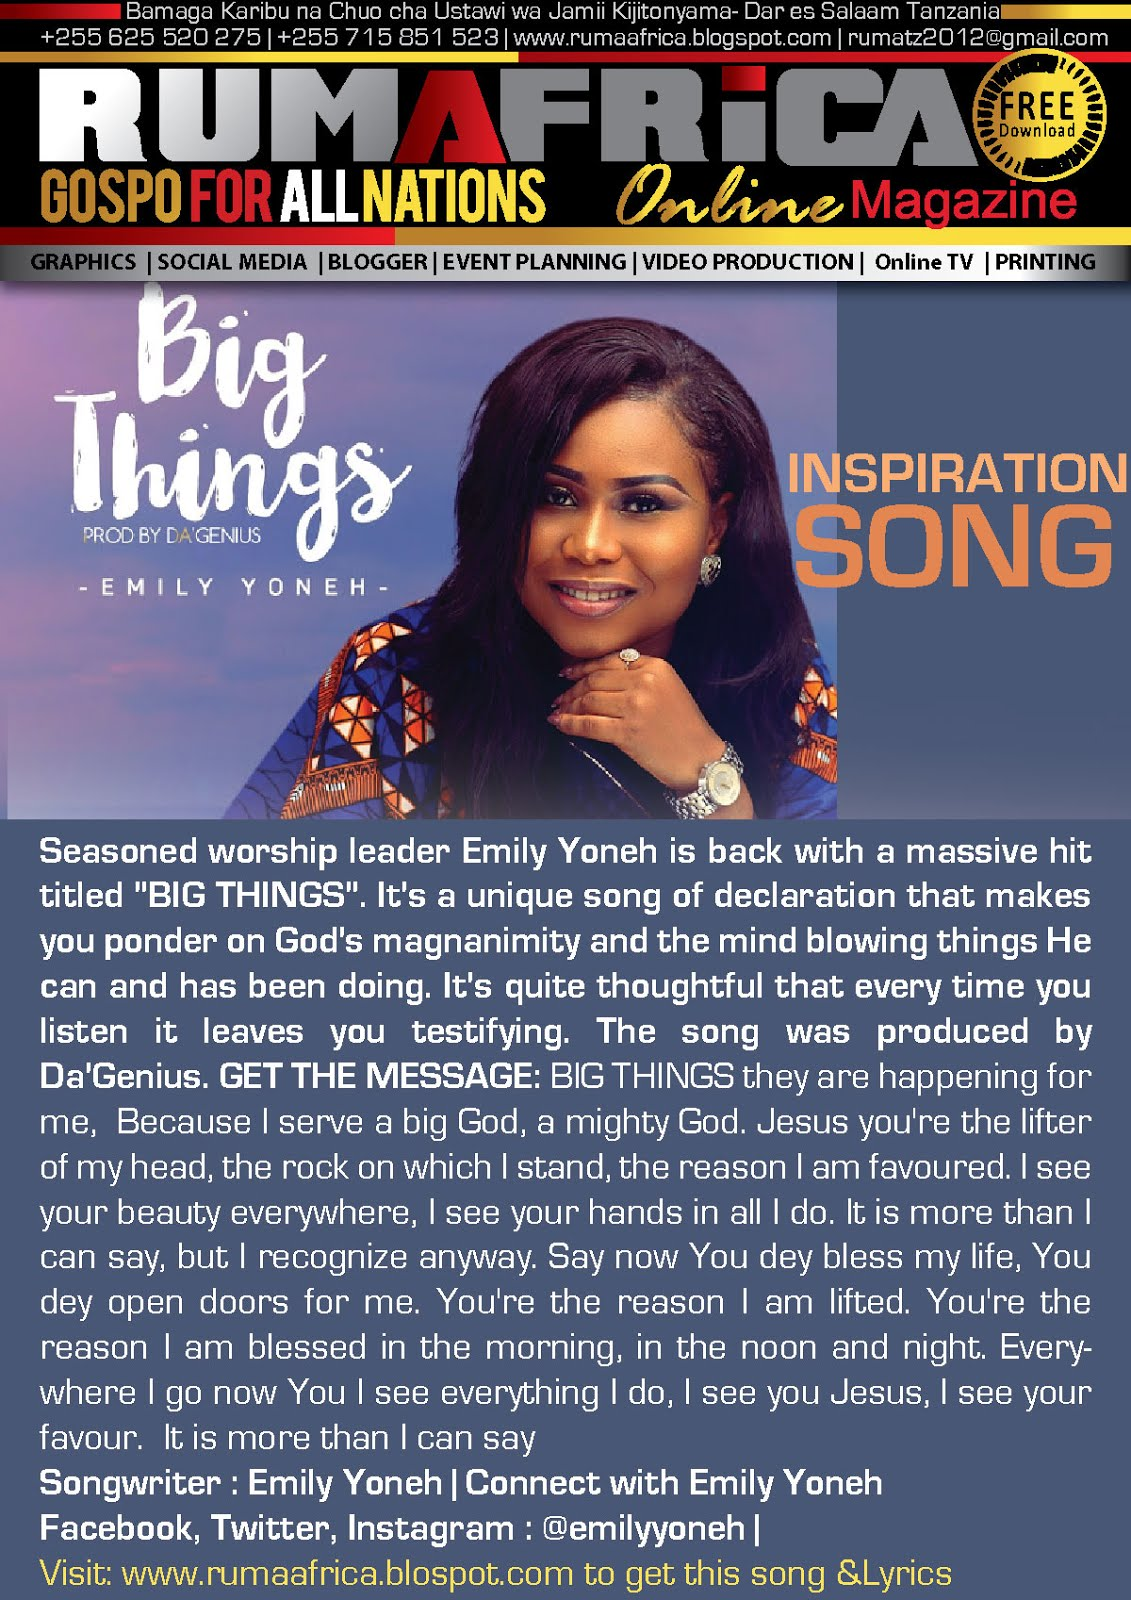 BIG THINGI | EMILY YONEH